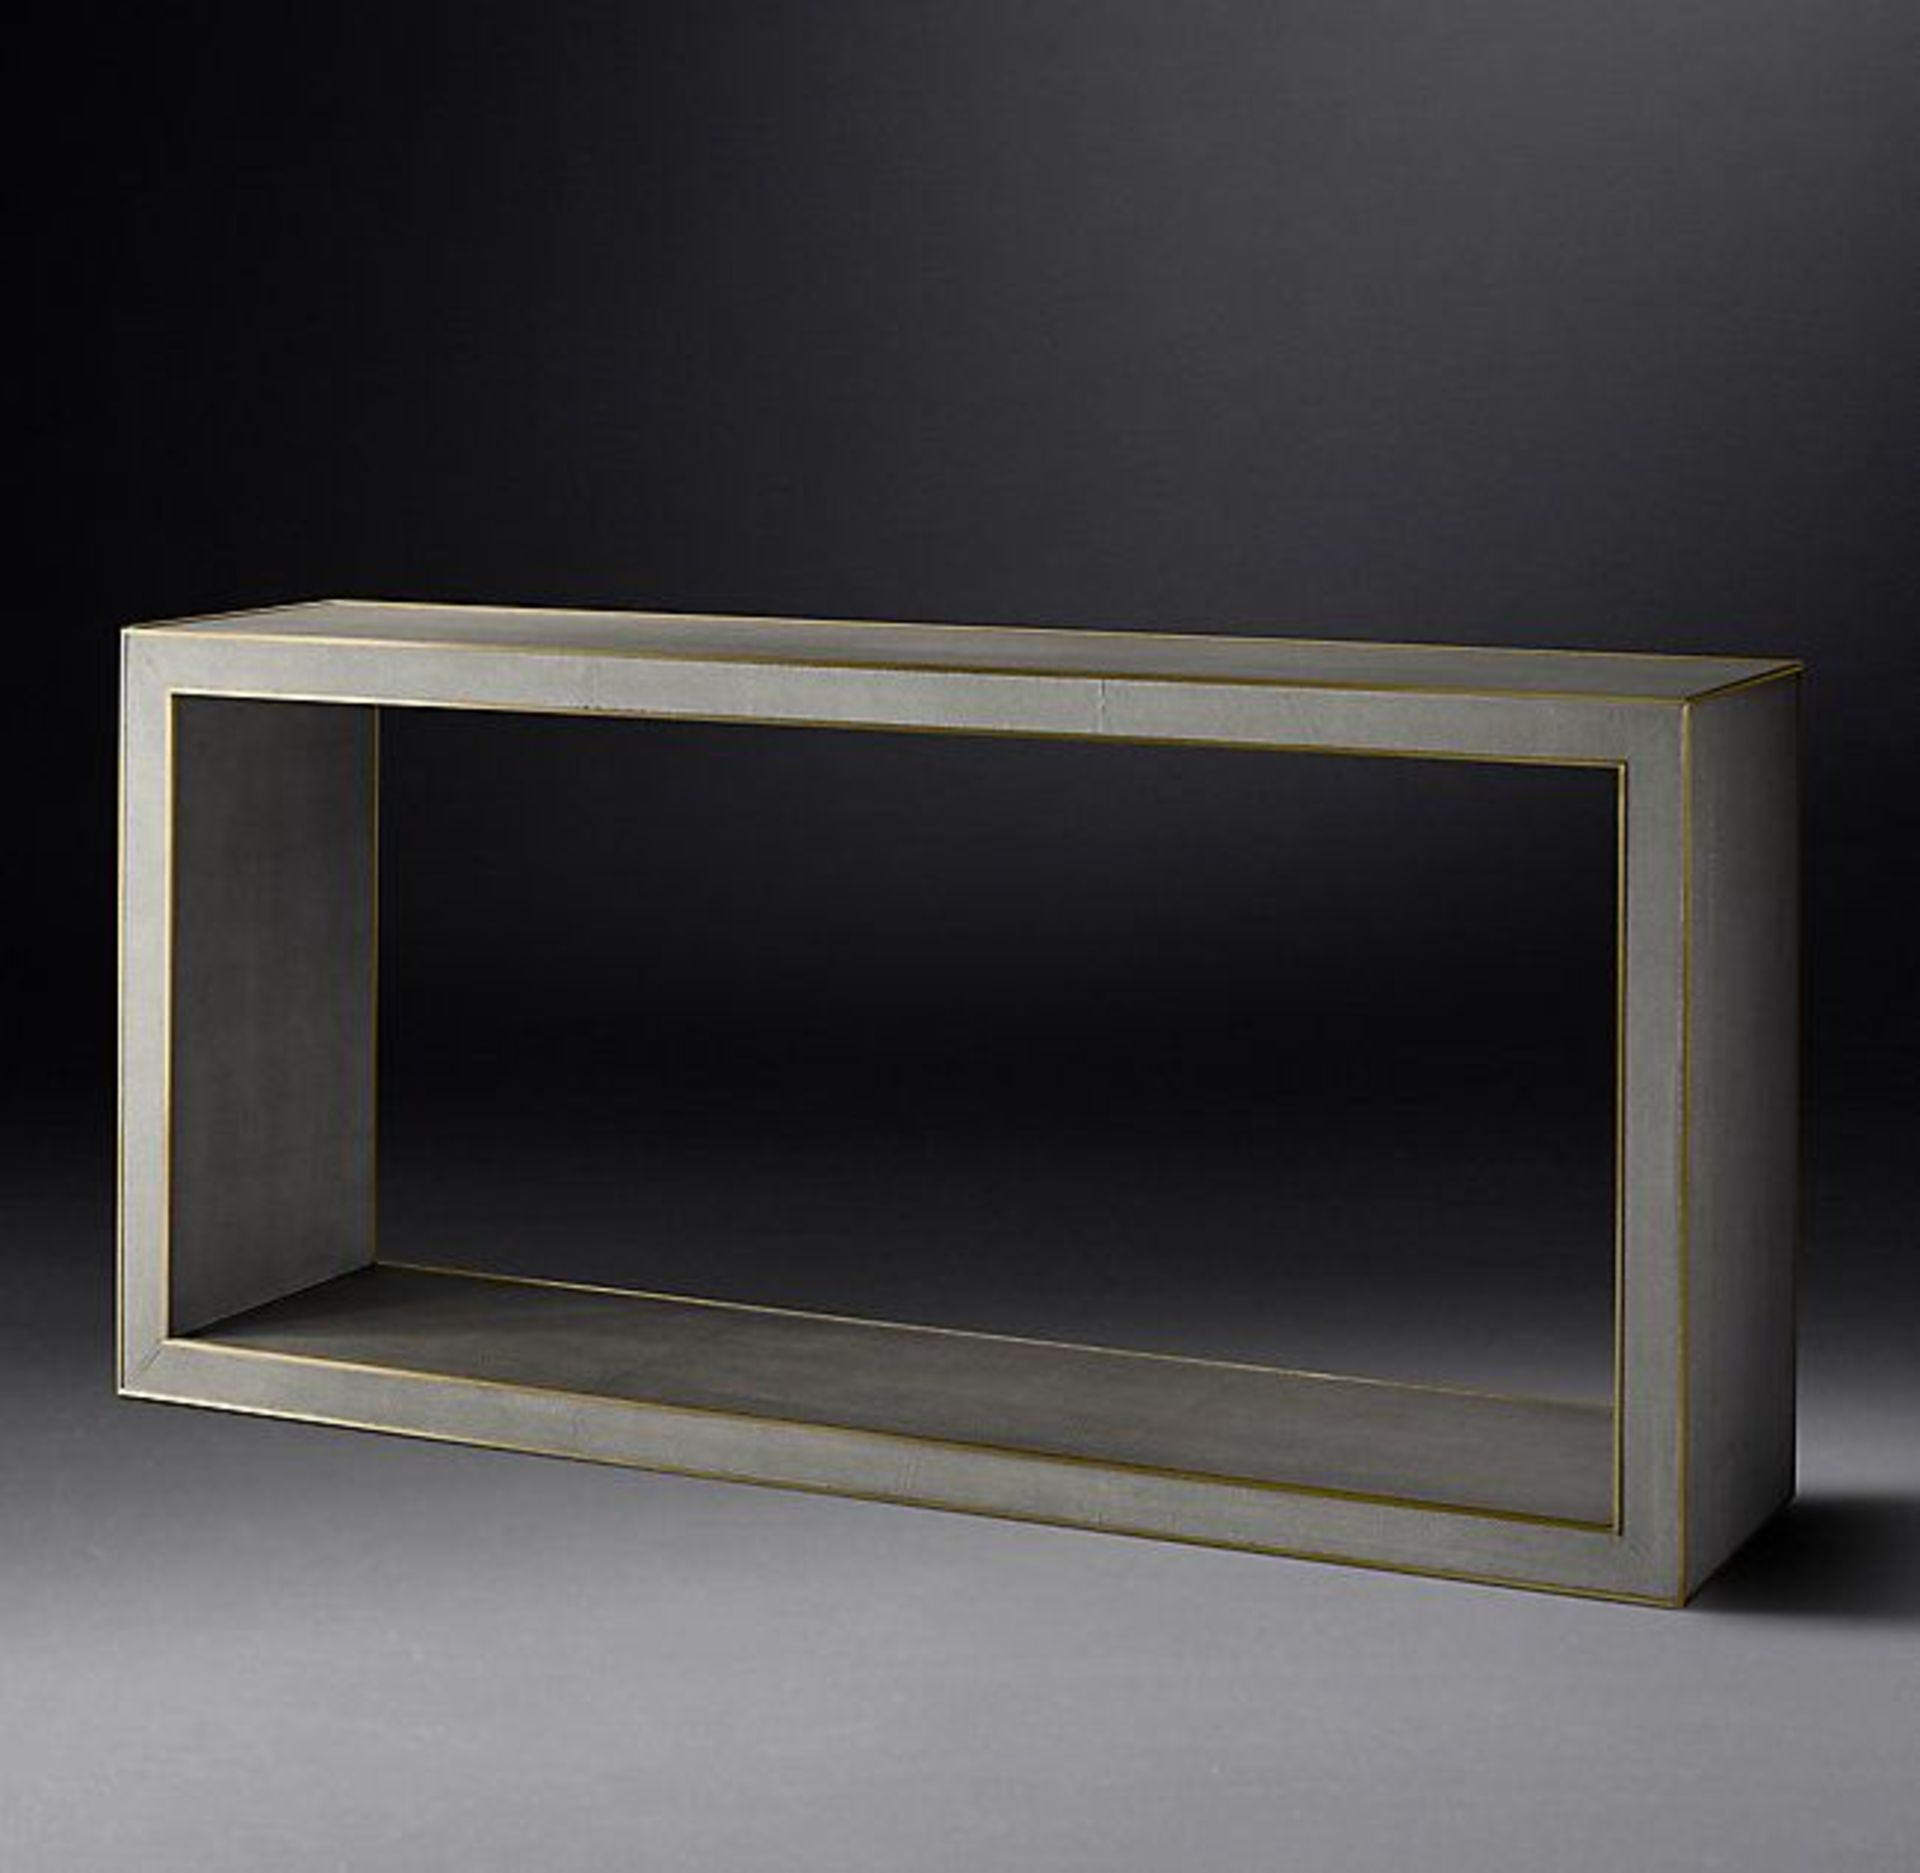 Cela Grey Shagreen 67 Rectangular Console Table Crafted Of Shagreen Embossed Leather With The